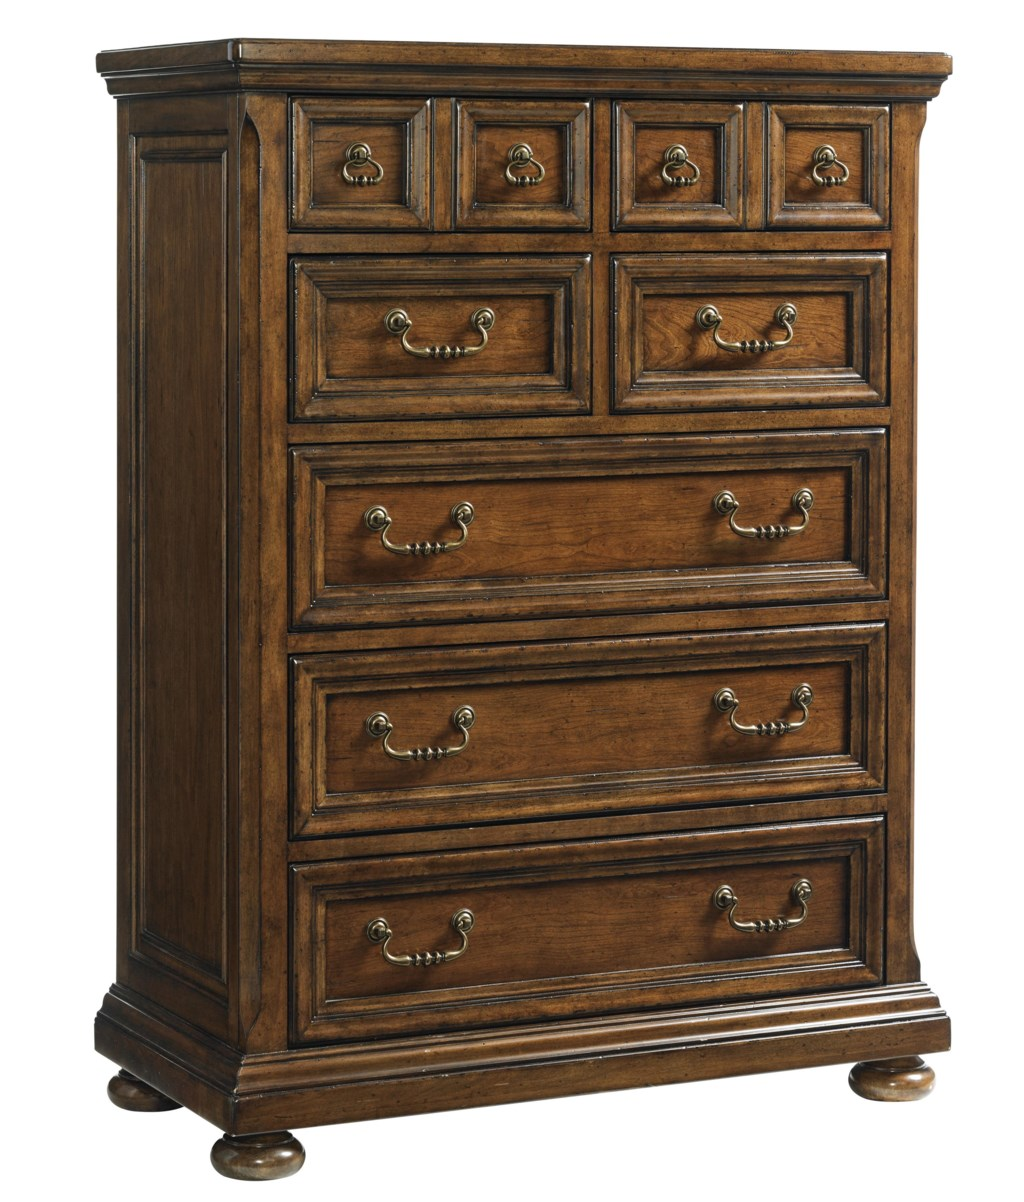 Coventry Hills Ellington Seven Drawer Chest With Traditional Bail Pull Hardware By Lexington